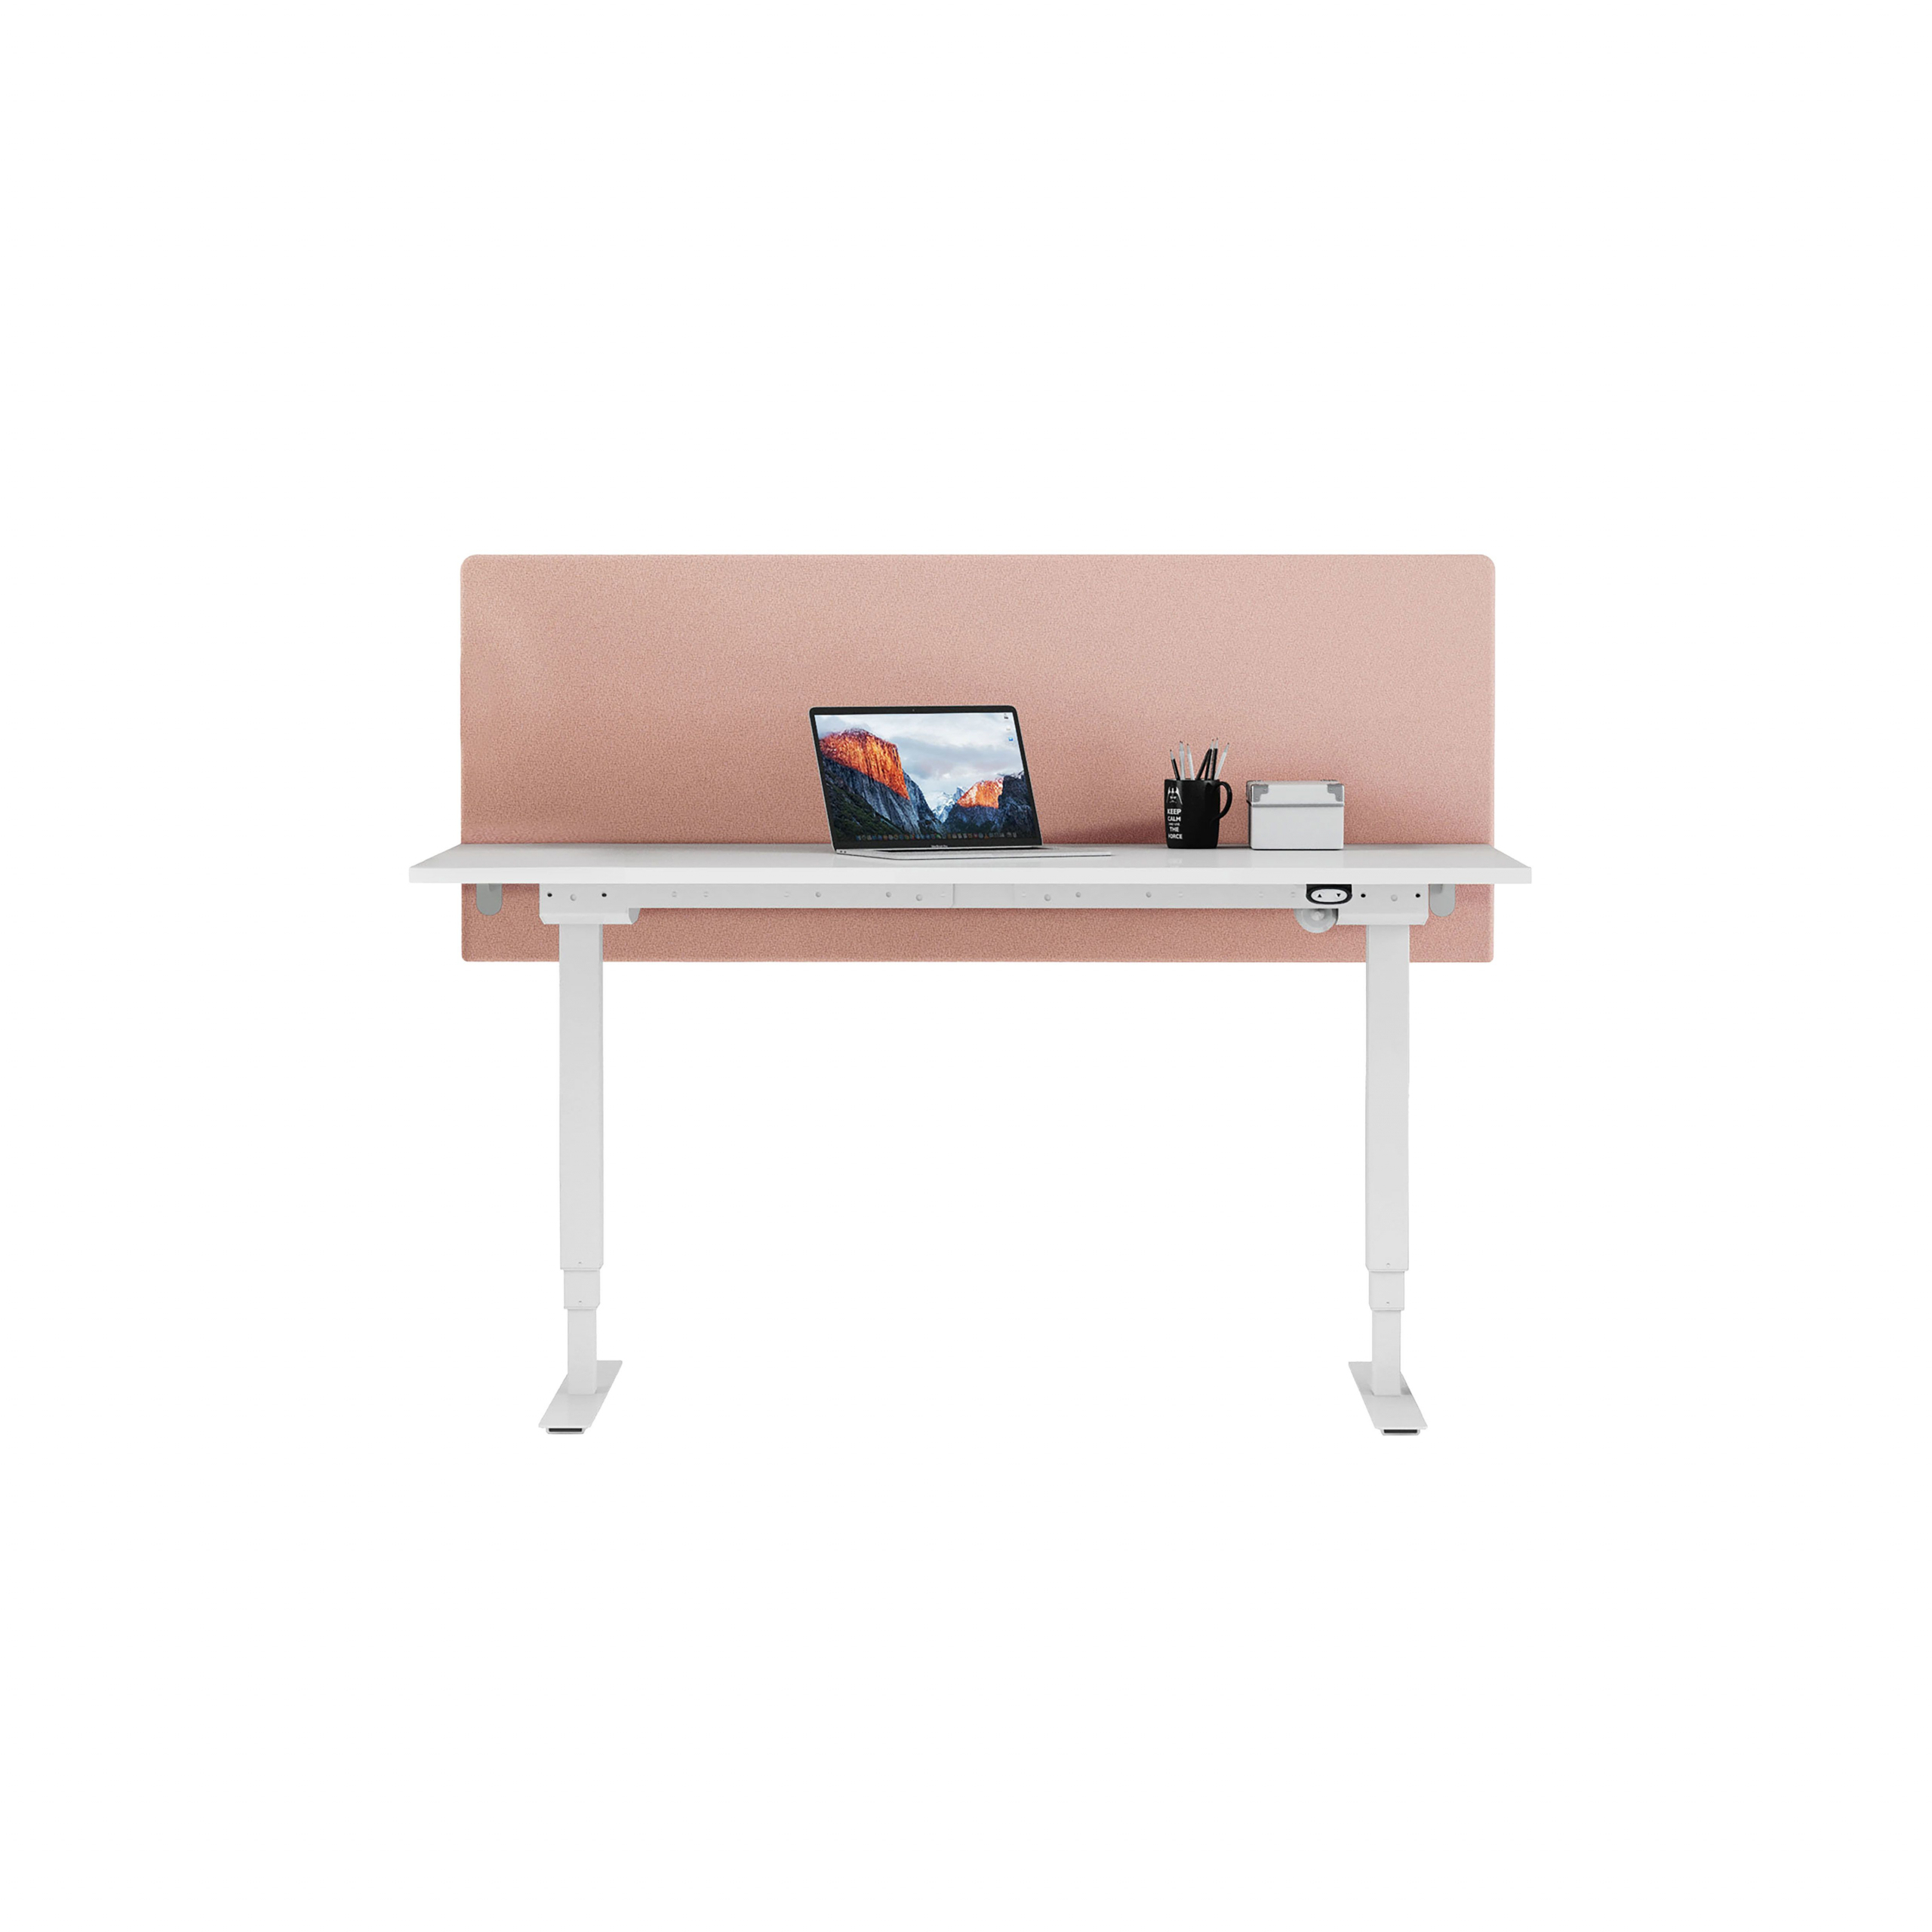 Tab S Table screen, acoustic